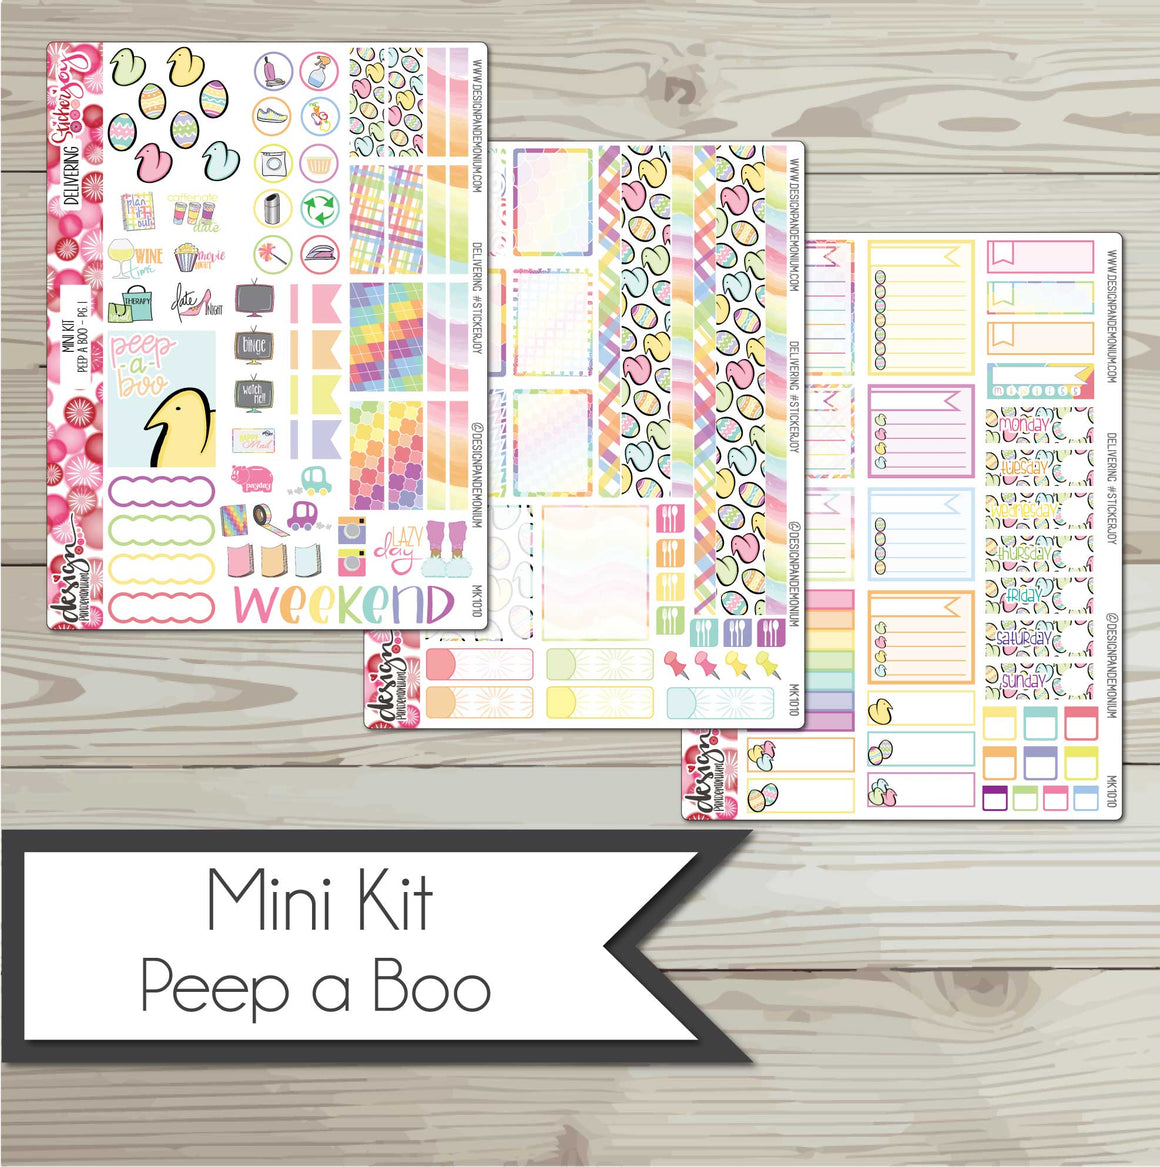 Mini Kit - Peep A Boo